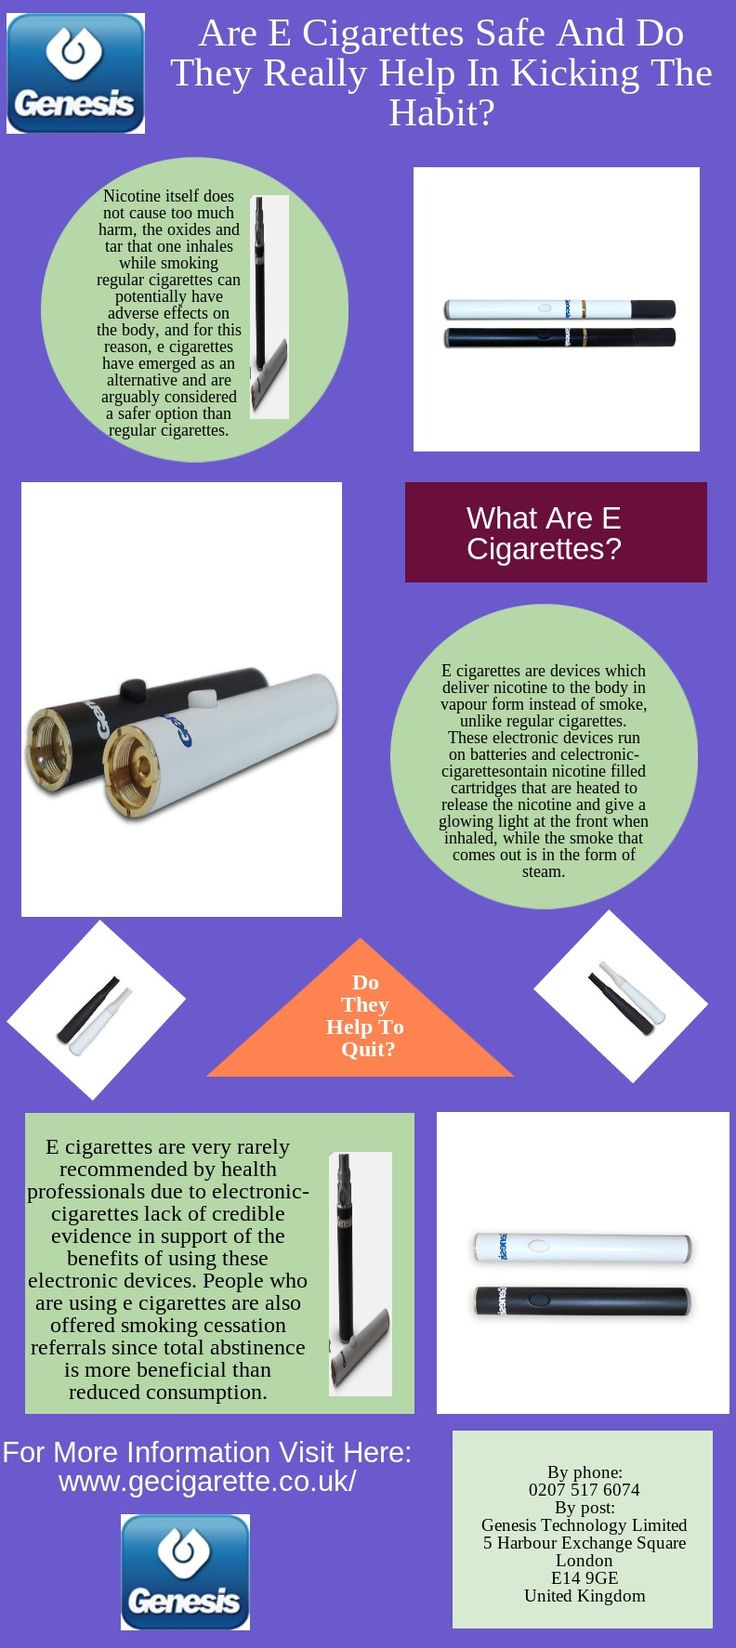 E cigarettes are devices which deliver nicotine to the body in vapour form instead of smoke, unlike regular cigarettes.